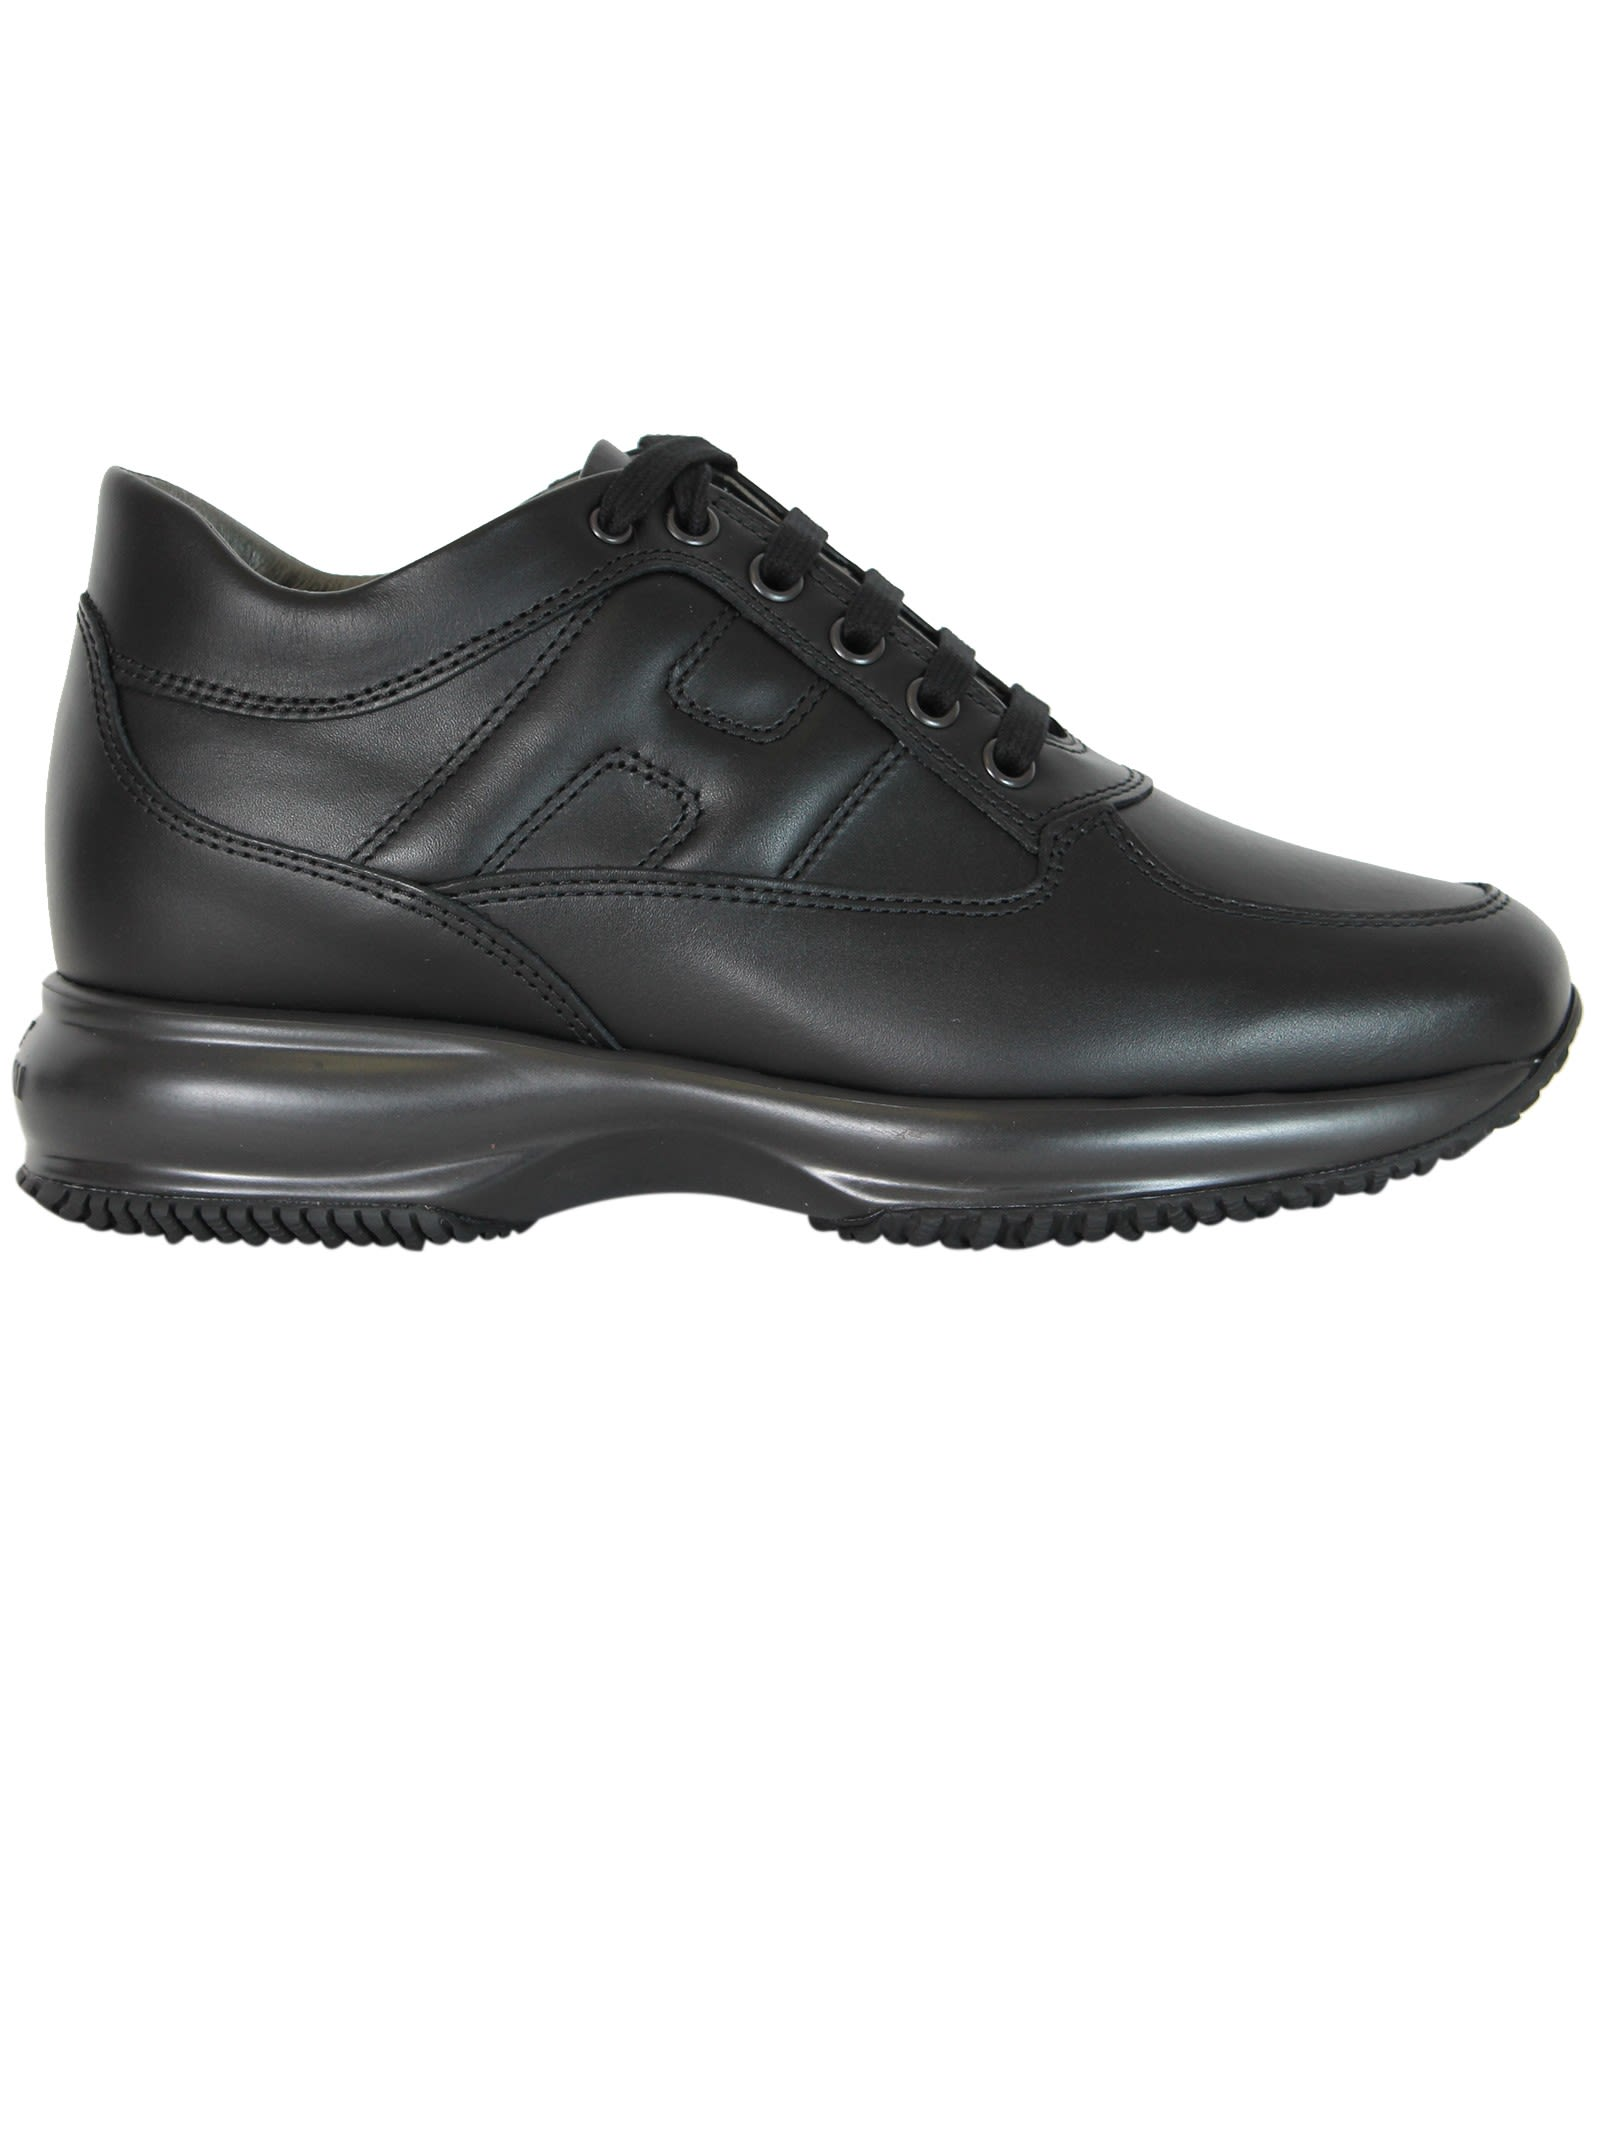 Hogan Black Leather Interactive Sneakers